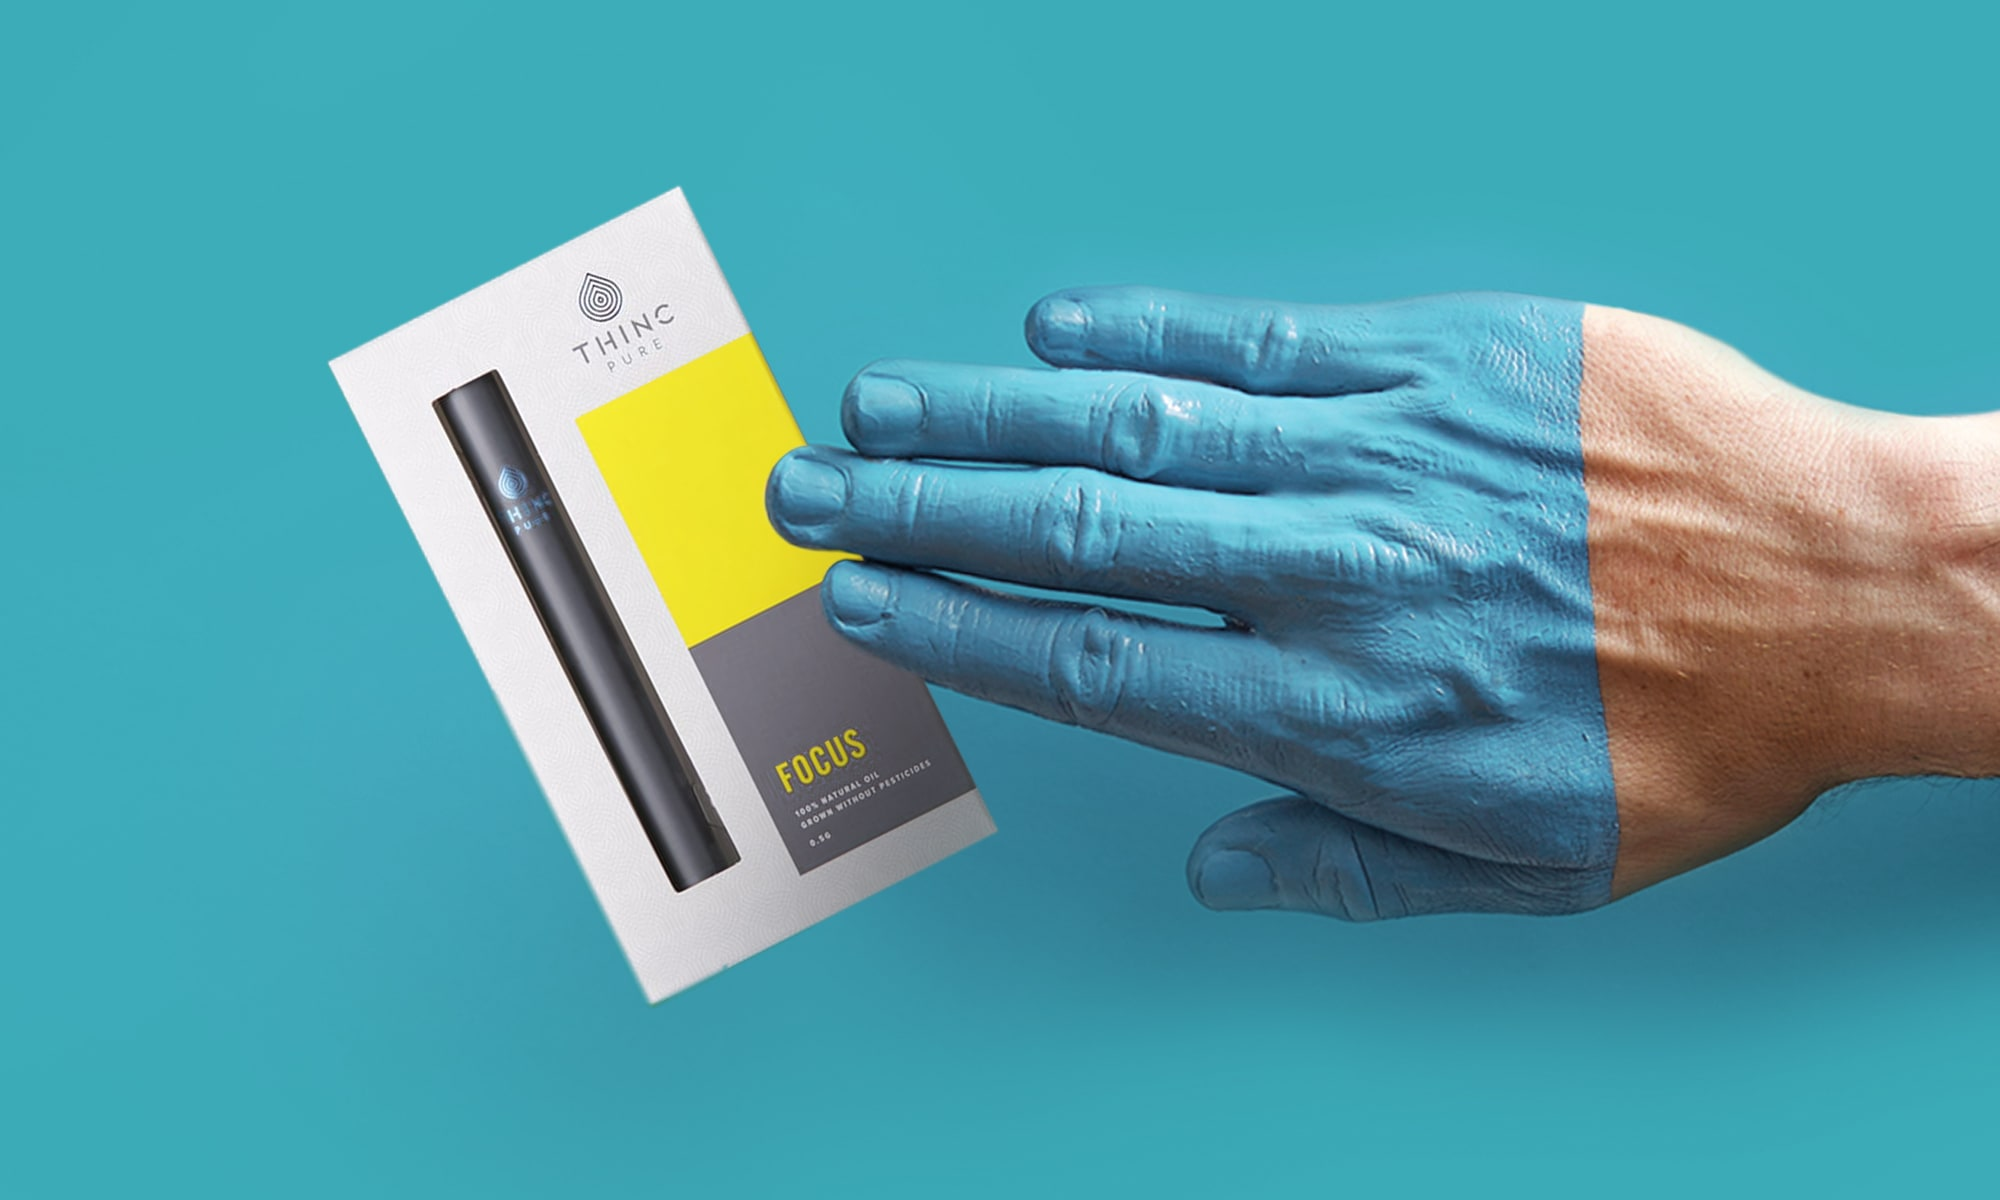 Half blue-painted hand next to yellow Thinc Pure Focus cannabis box on bright blue background.